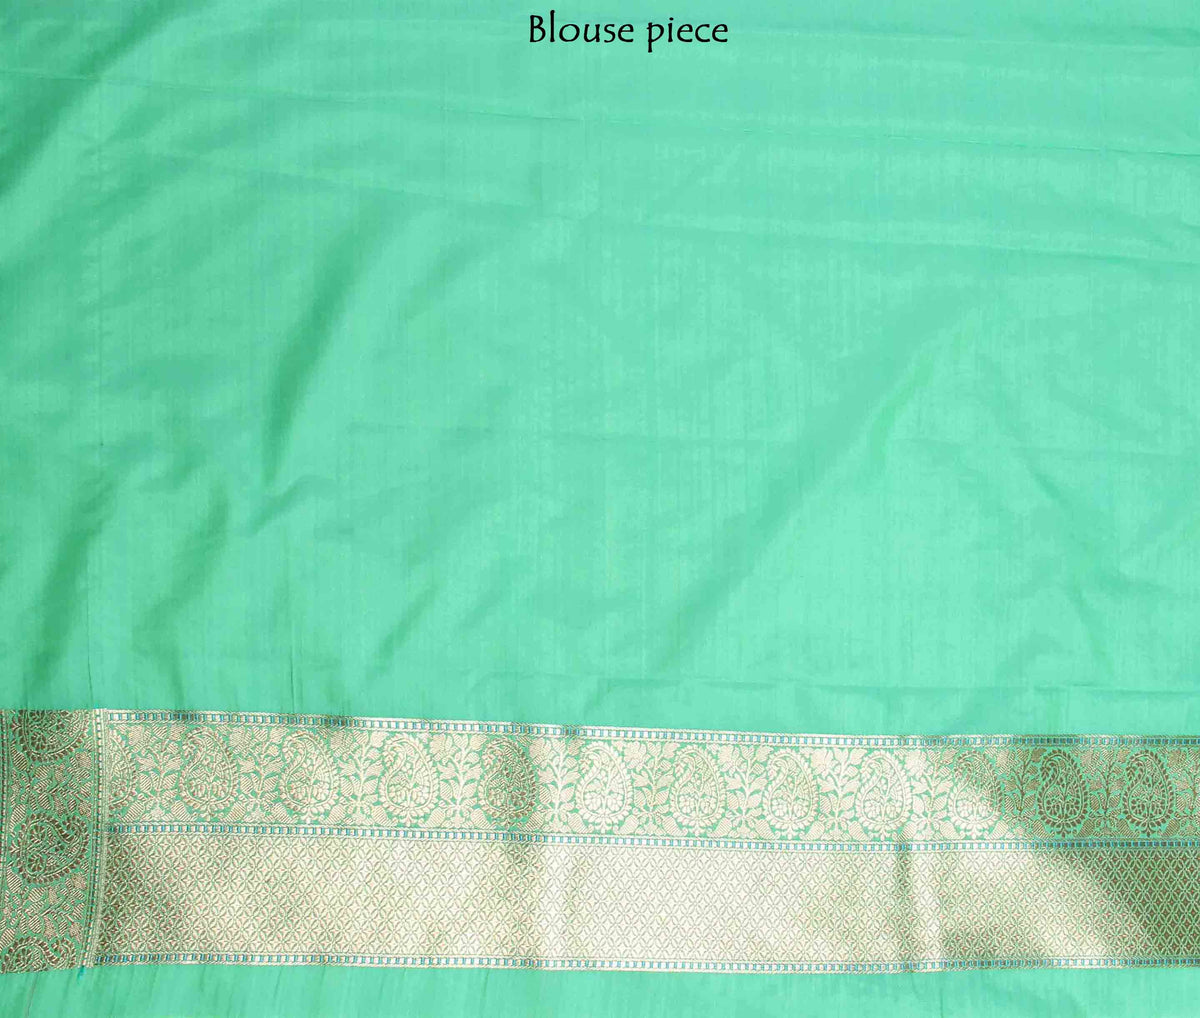 Green Banarasi Saree with drop motifs (4) blouse